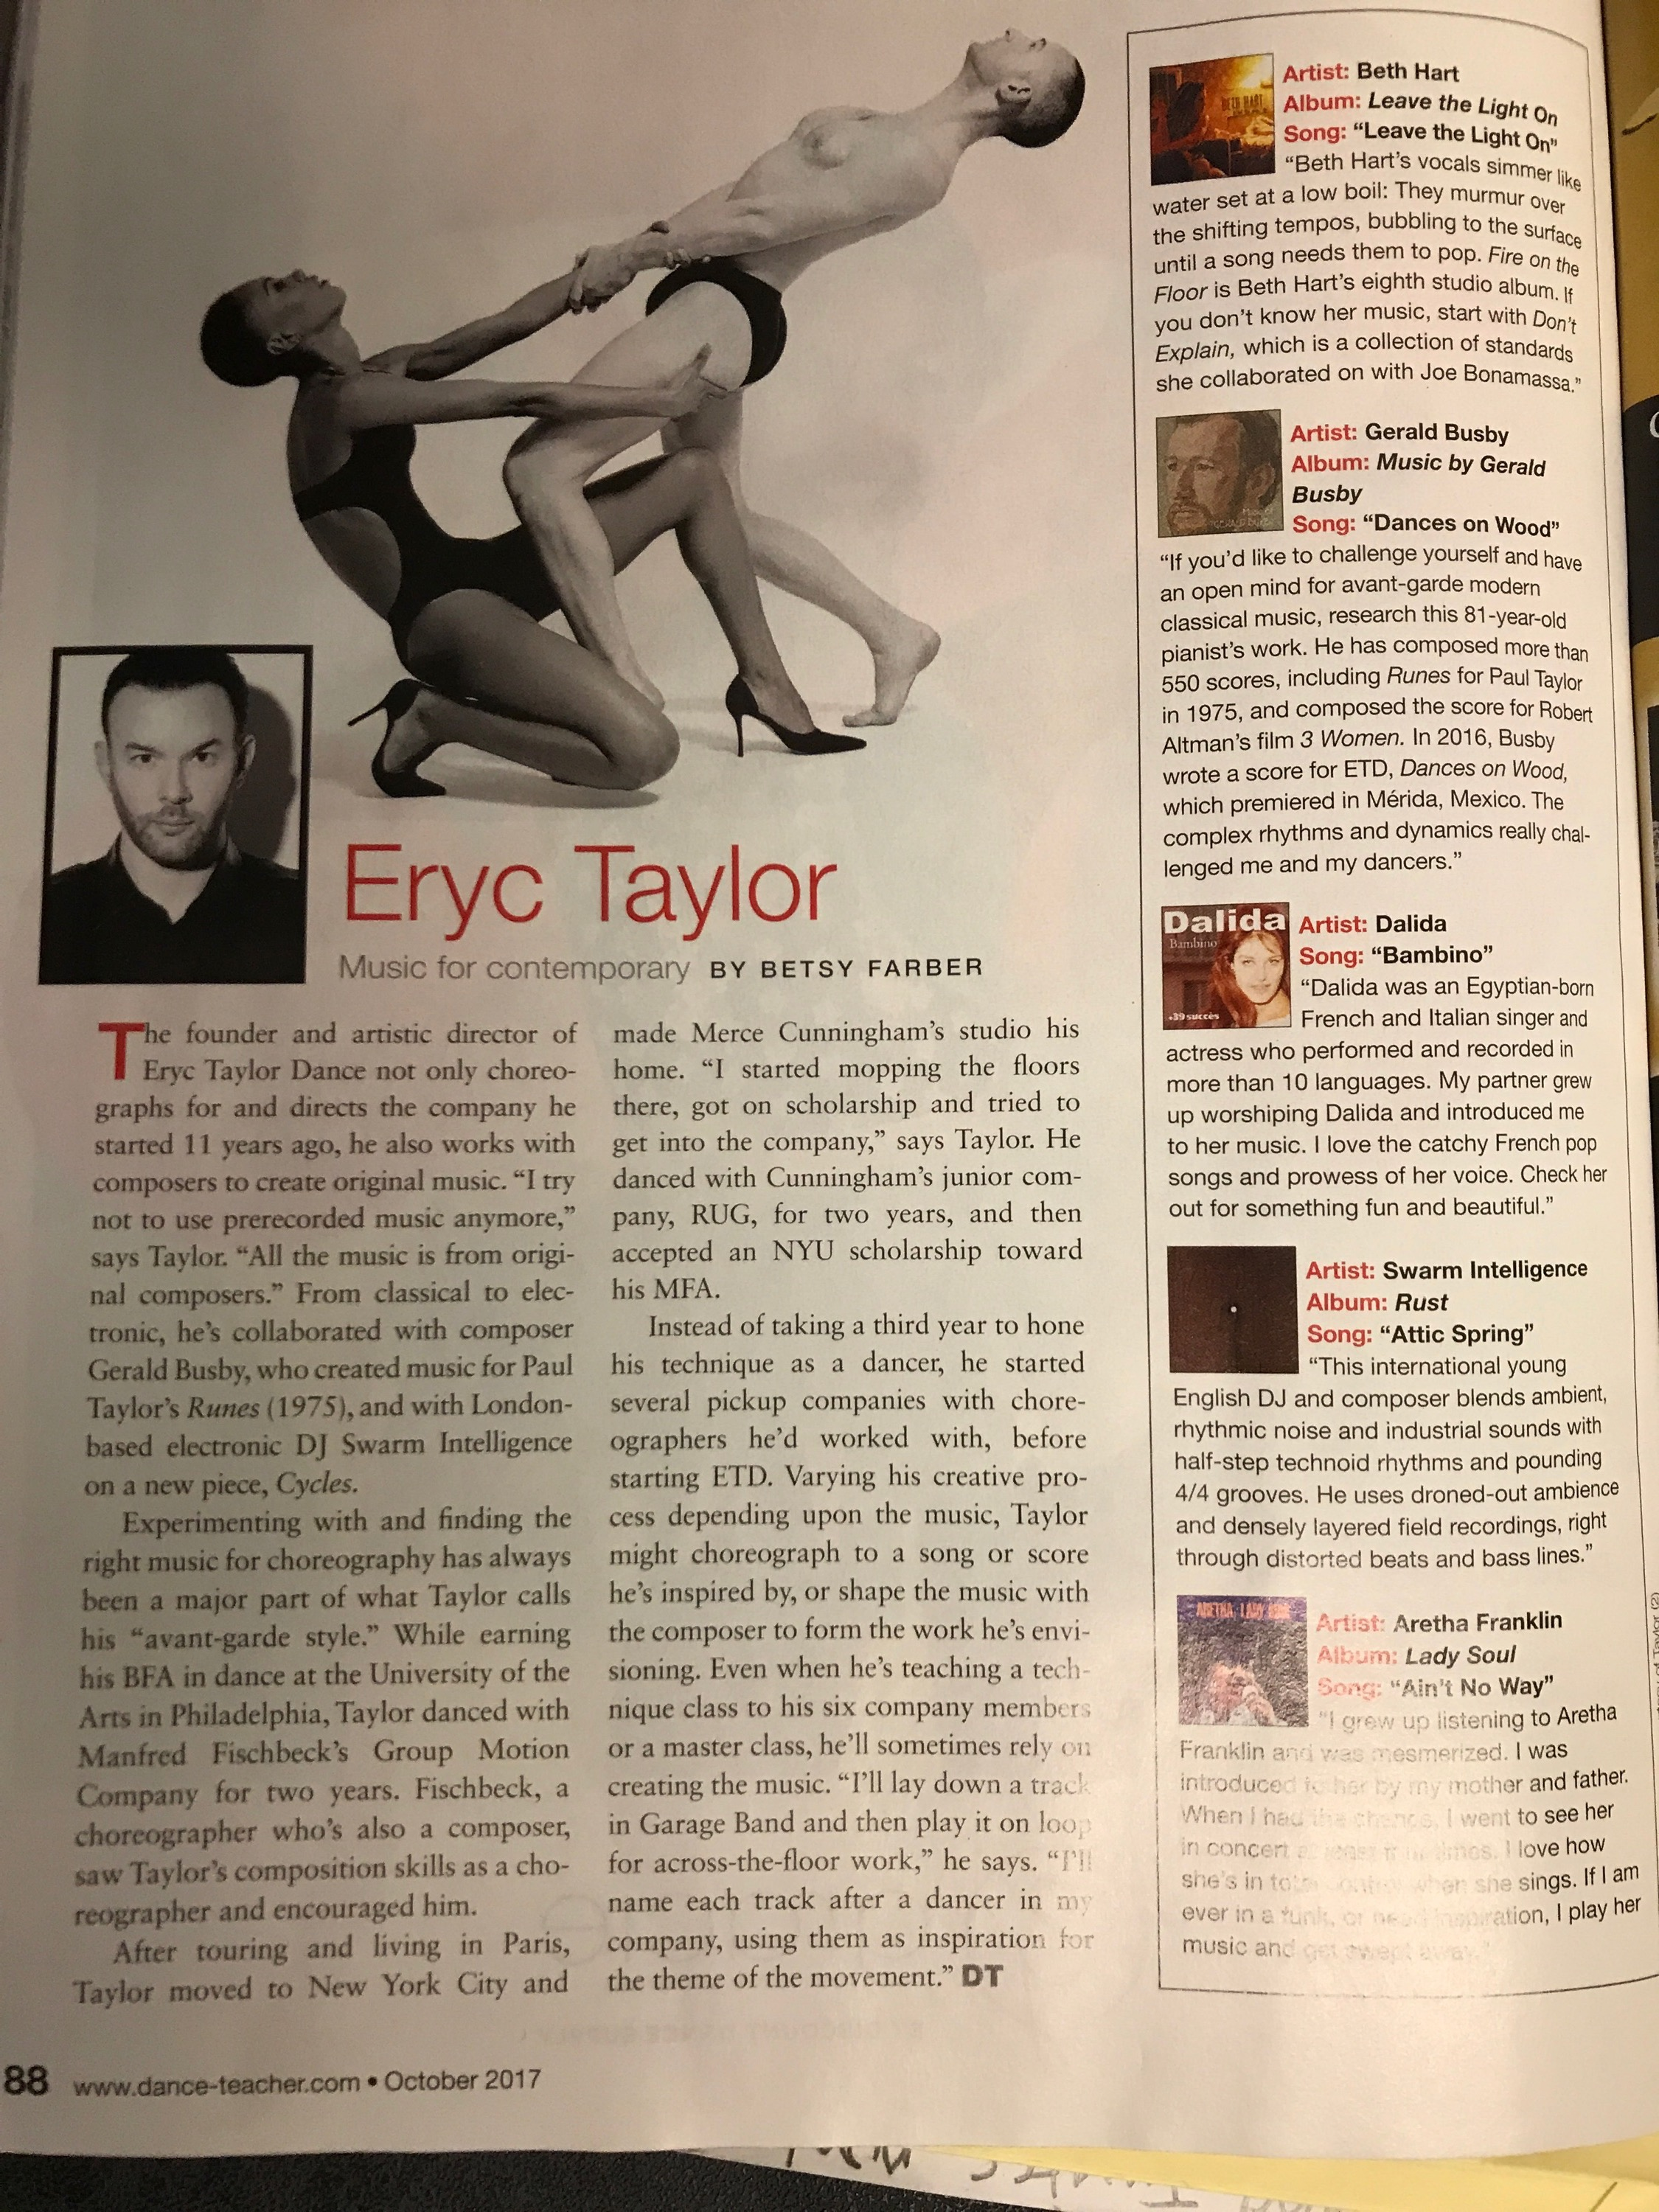 ERYC TAYLOR DANCE Dance Teacher Mag.